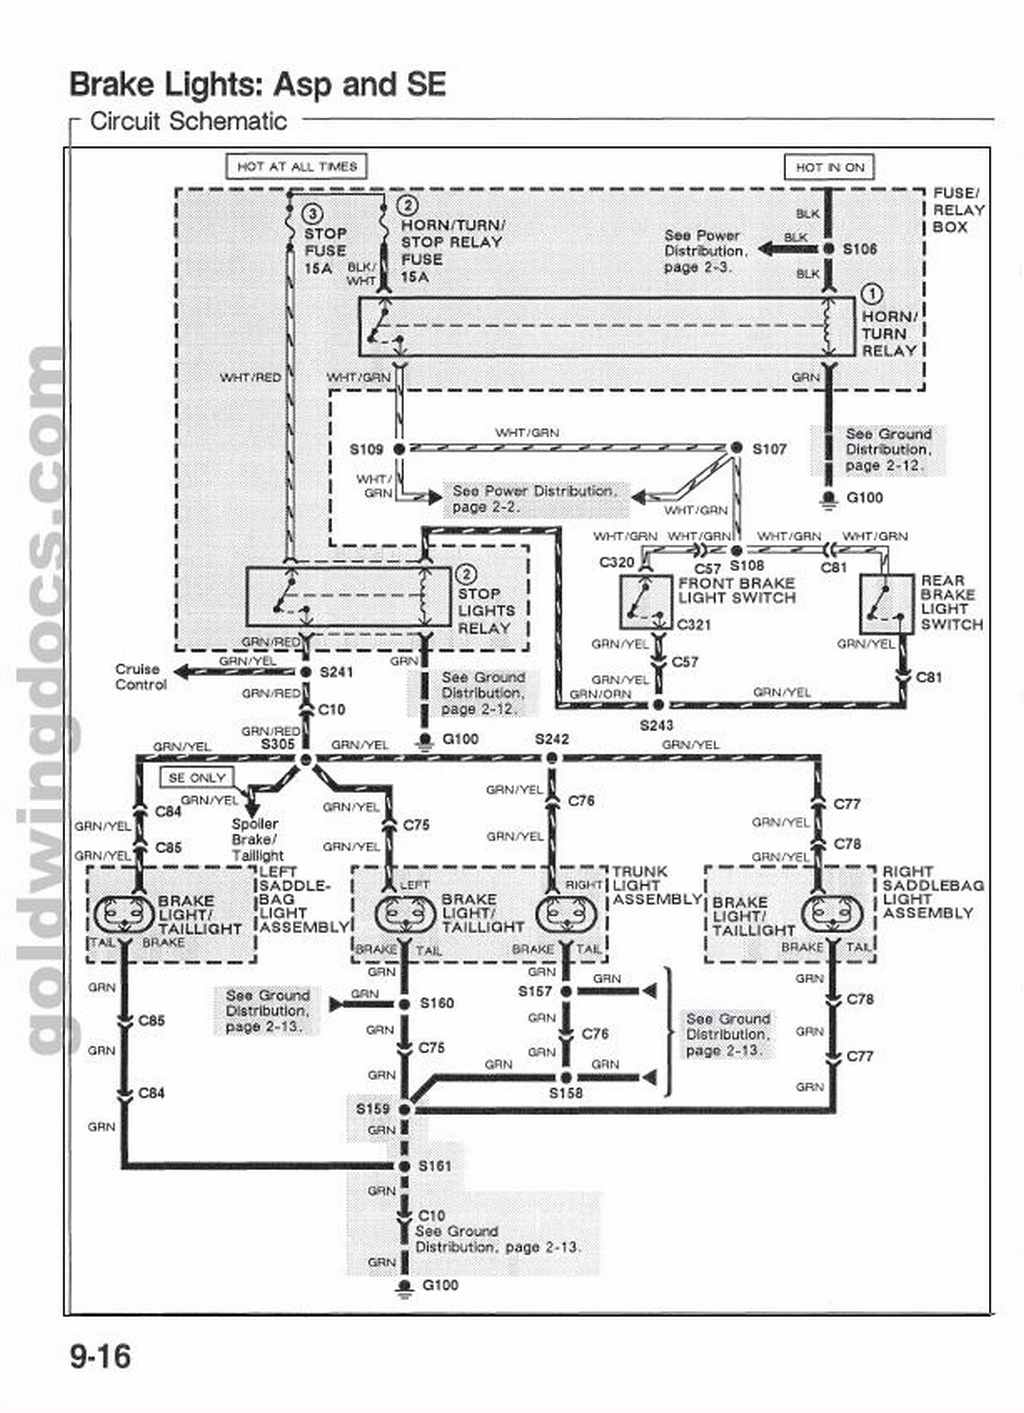 gl1500 wiring diagram wiring diagram g9 1986 Honda Goldwing Ignition Wiring Diagram 89 gl1500 brake light wiring diagram? steve saunders goldwing forums parker trailer wiring gl1500 wiring diagram